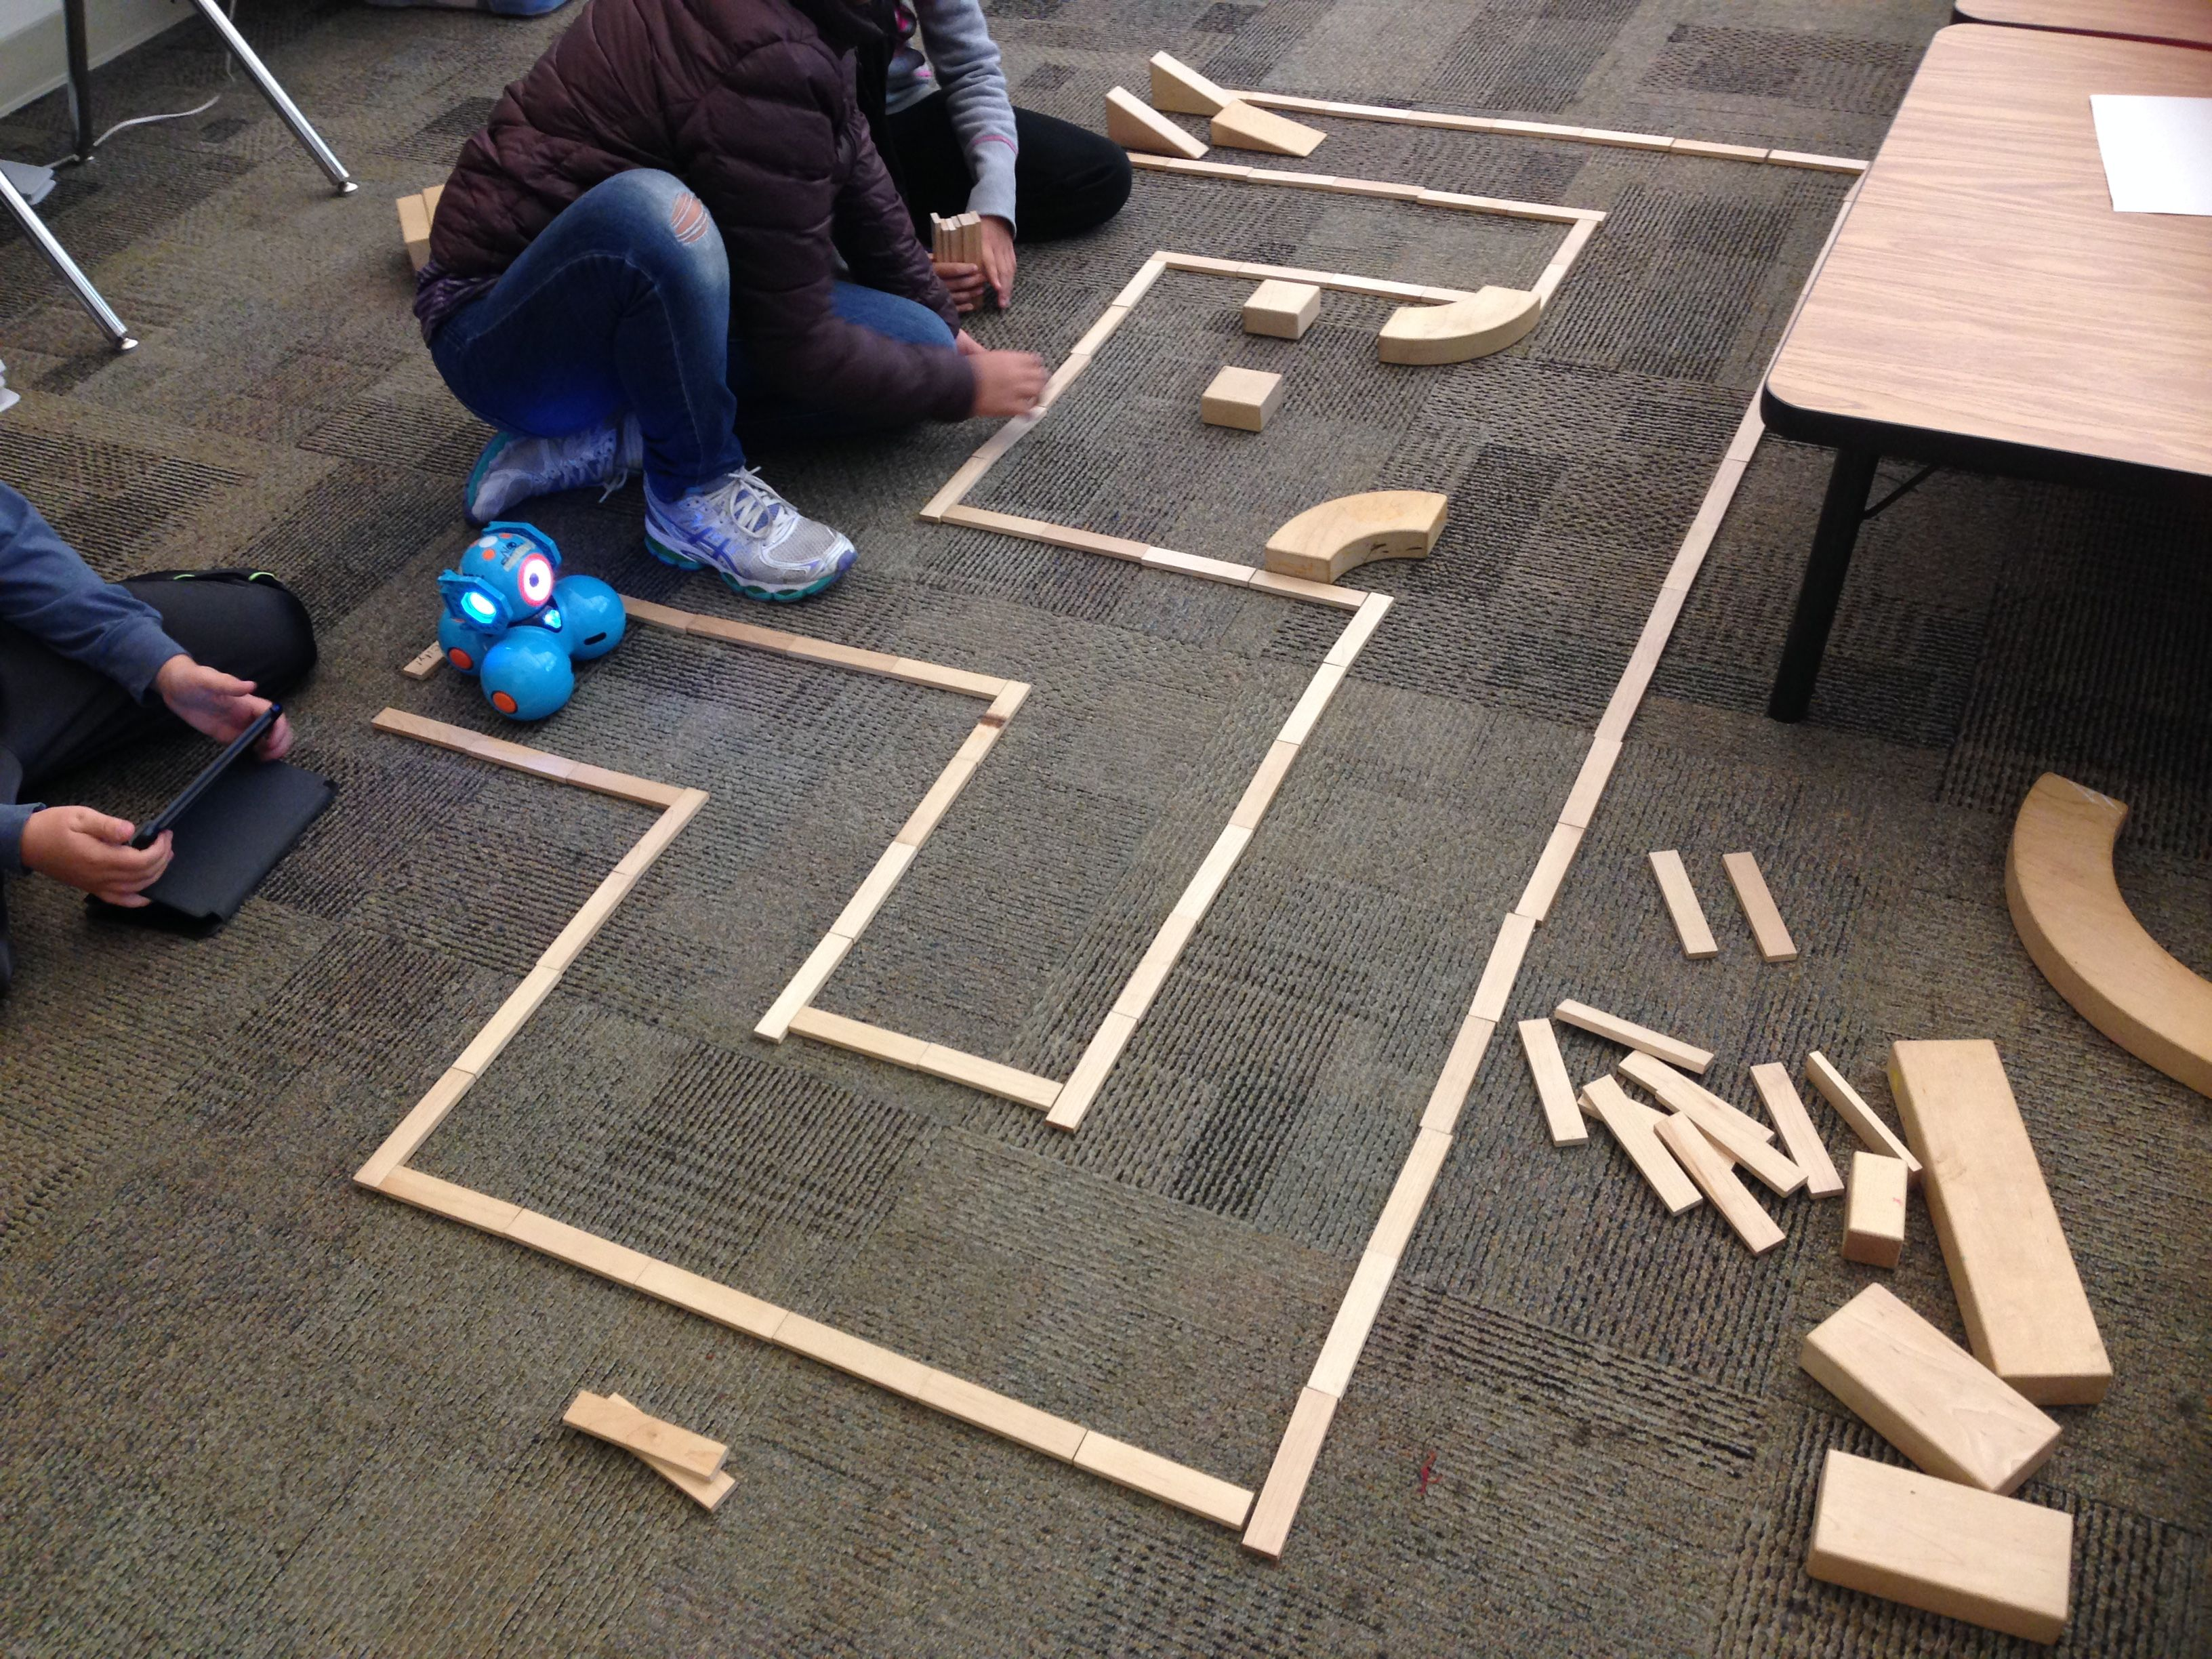 The Robots The Makerspace And Mazes